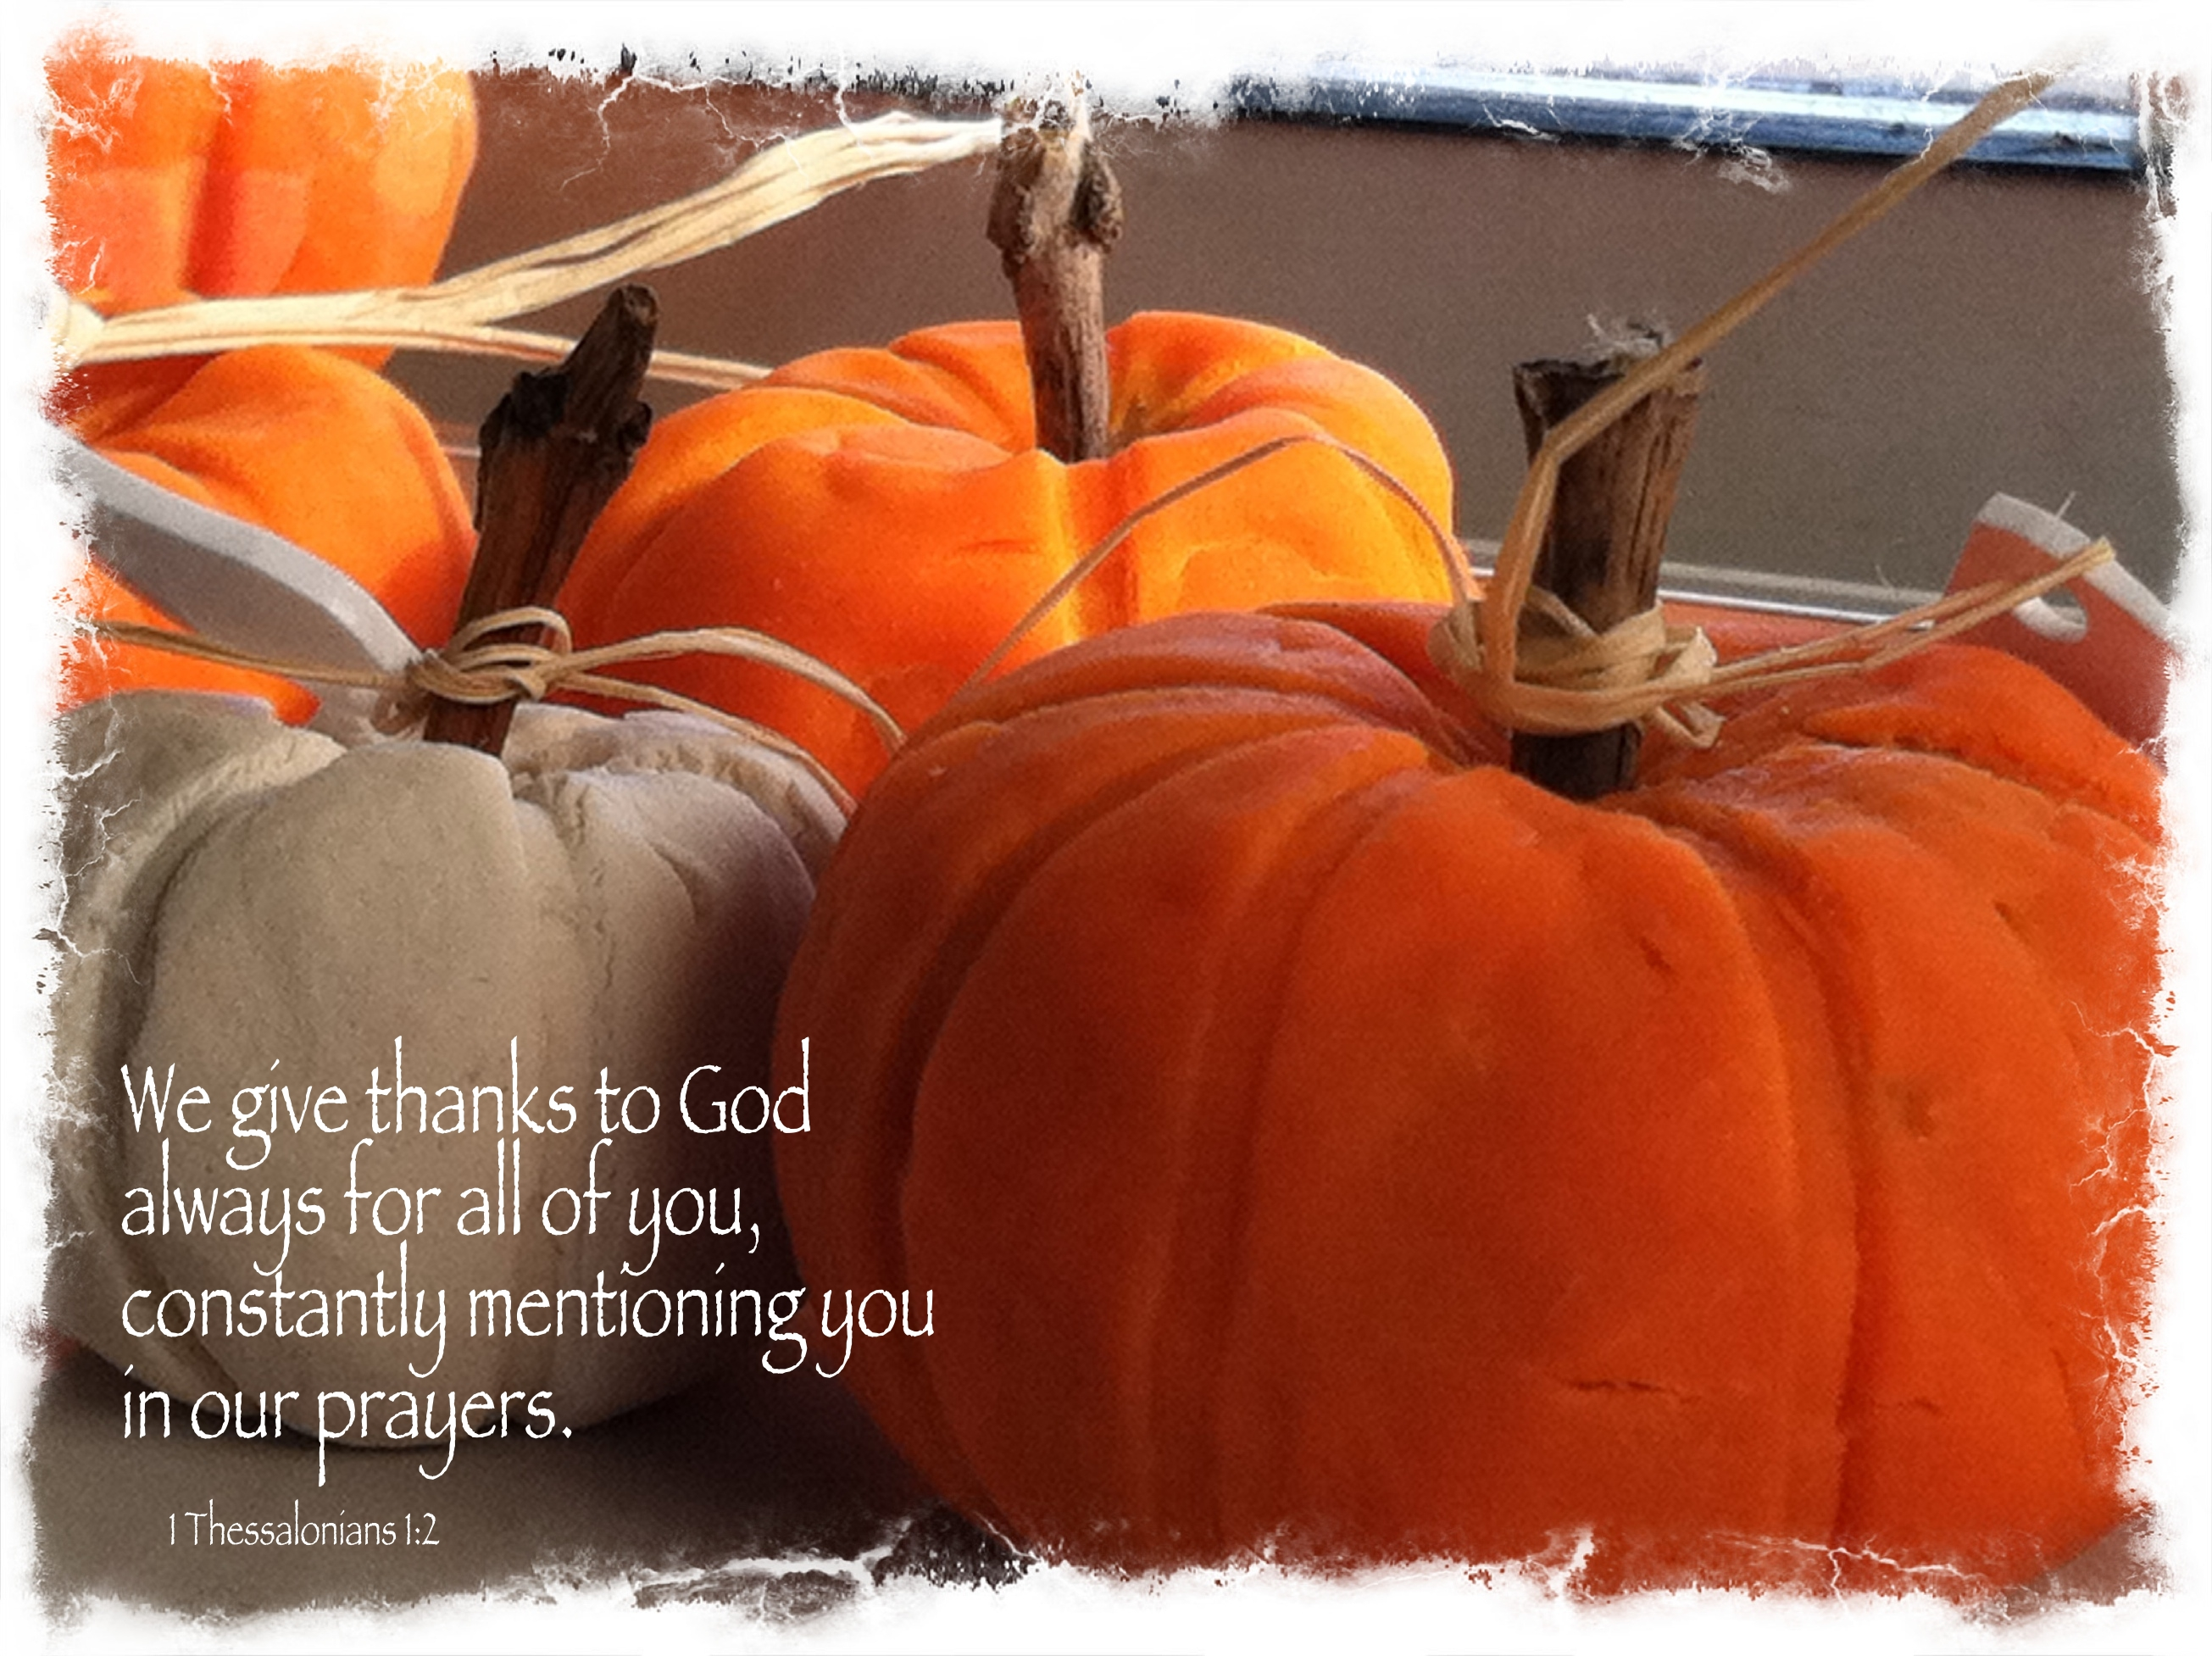 Give Thanks 4 1 Thessalonians 1:2.